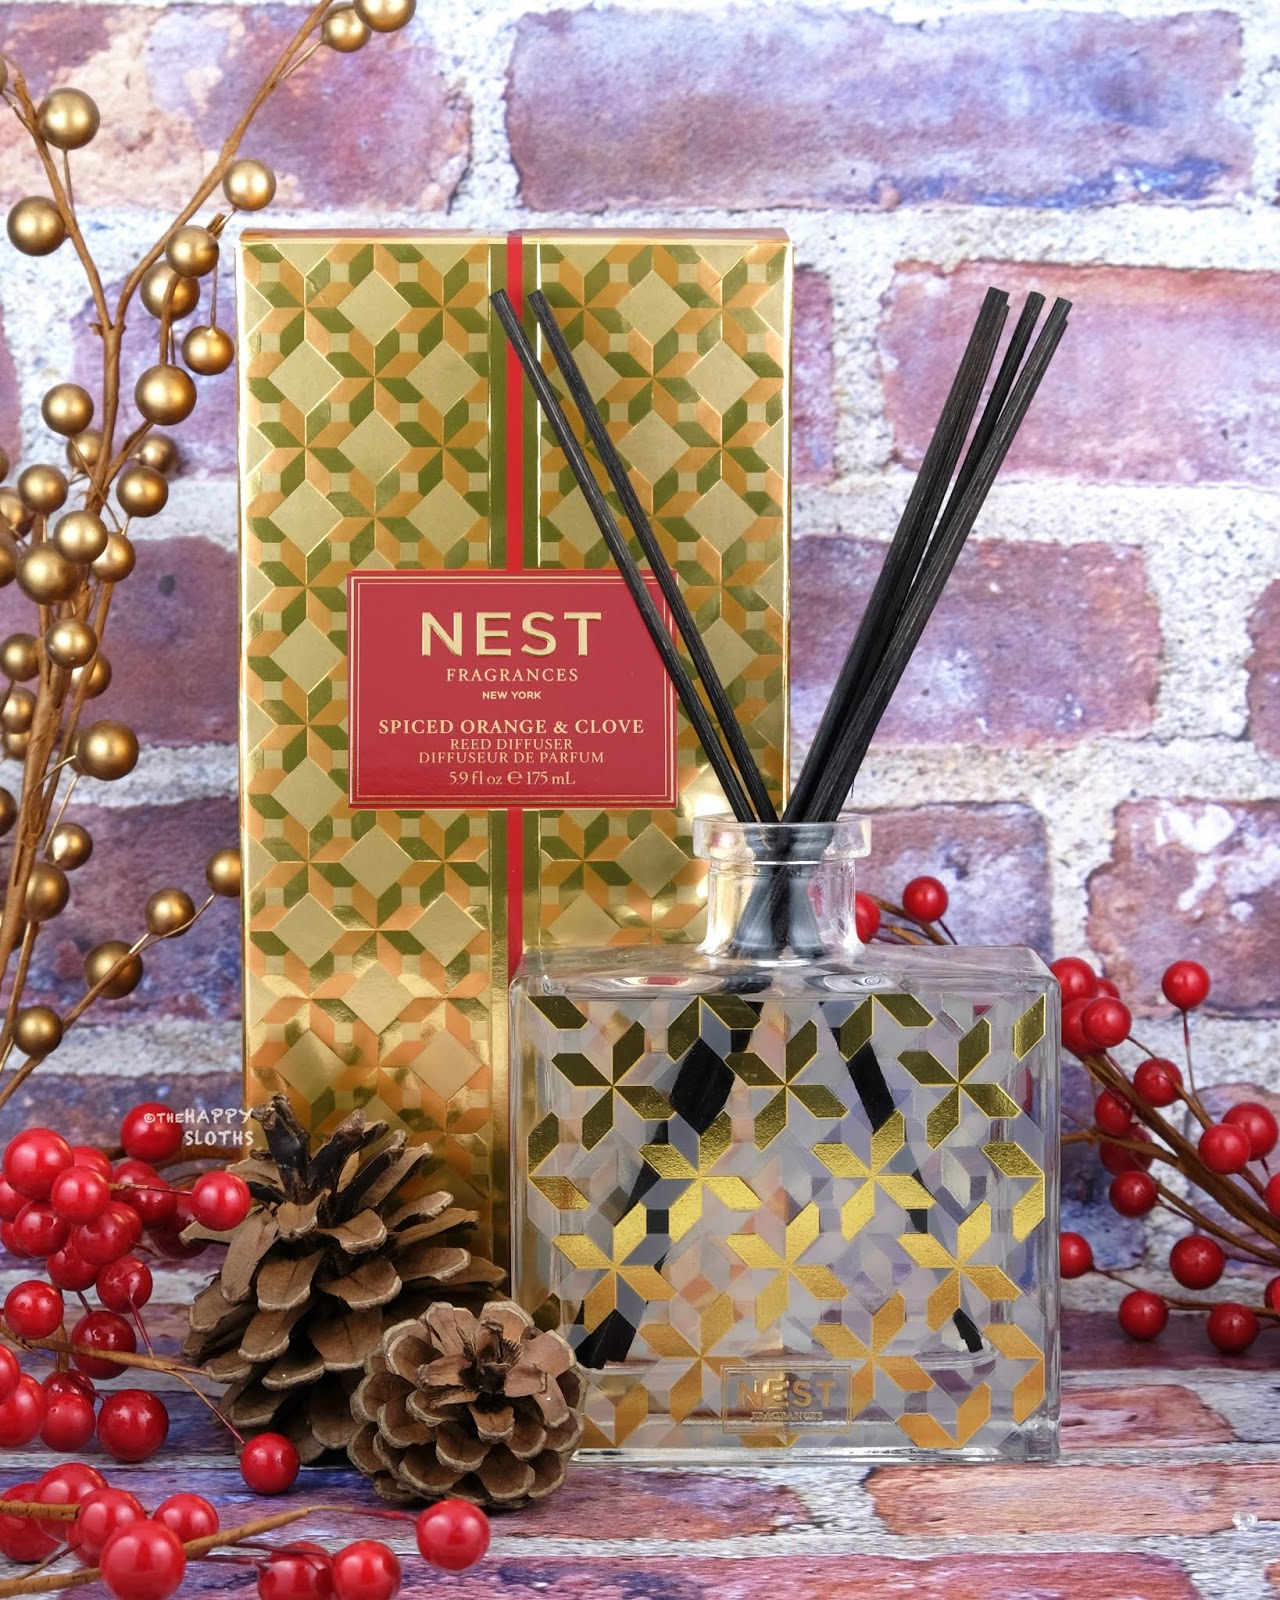 NEST Fragrances | Holiday 2019 Spiced Orange & Clove Reed Diffuser: Review